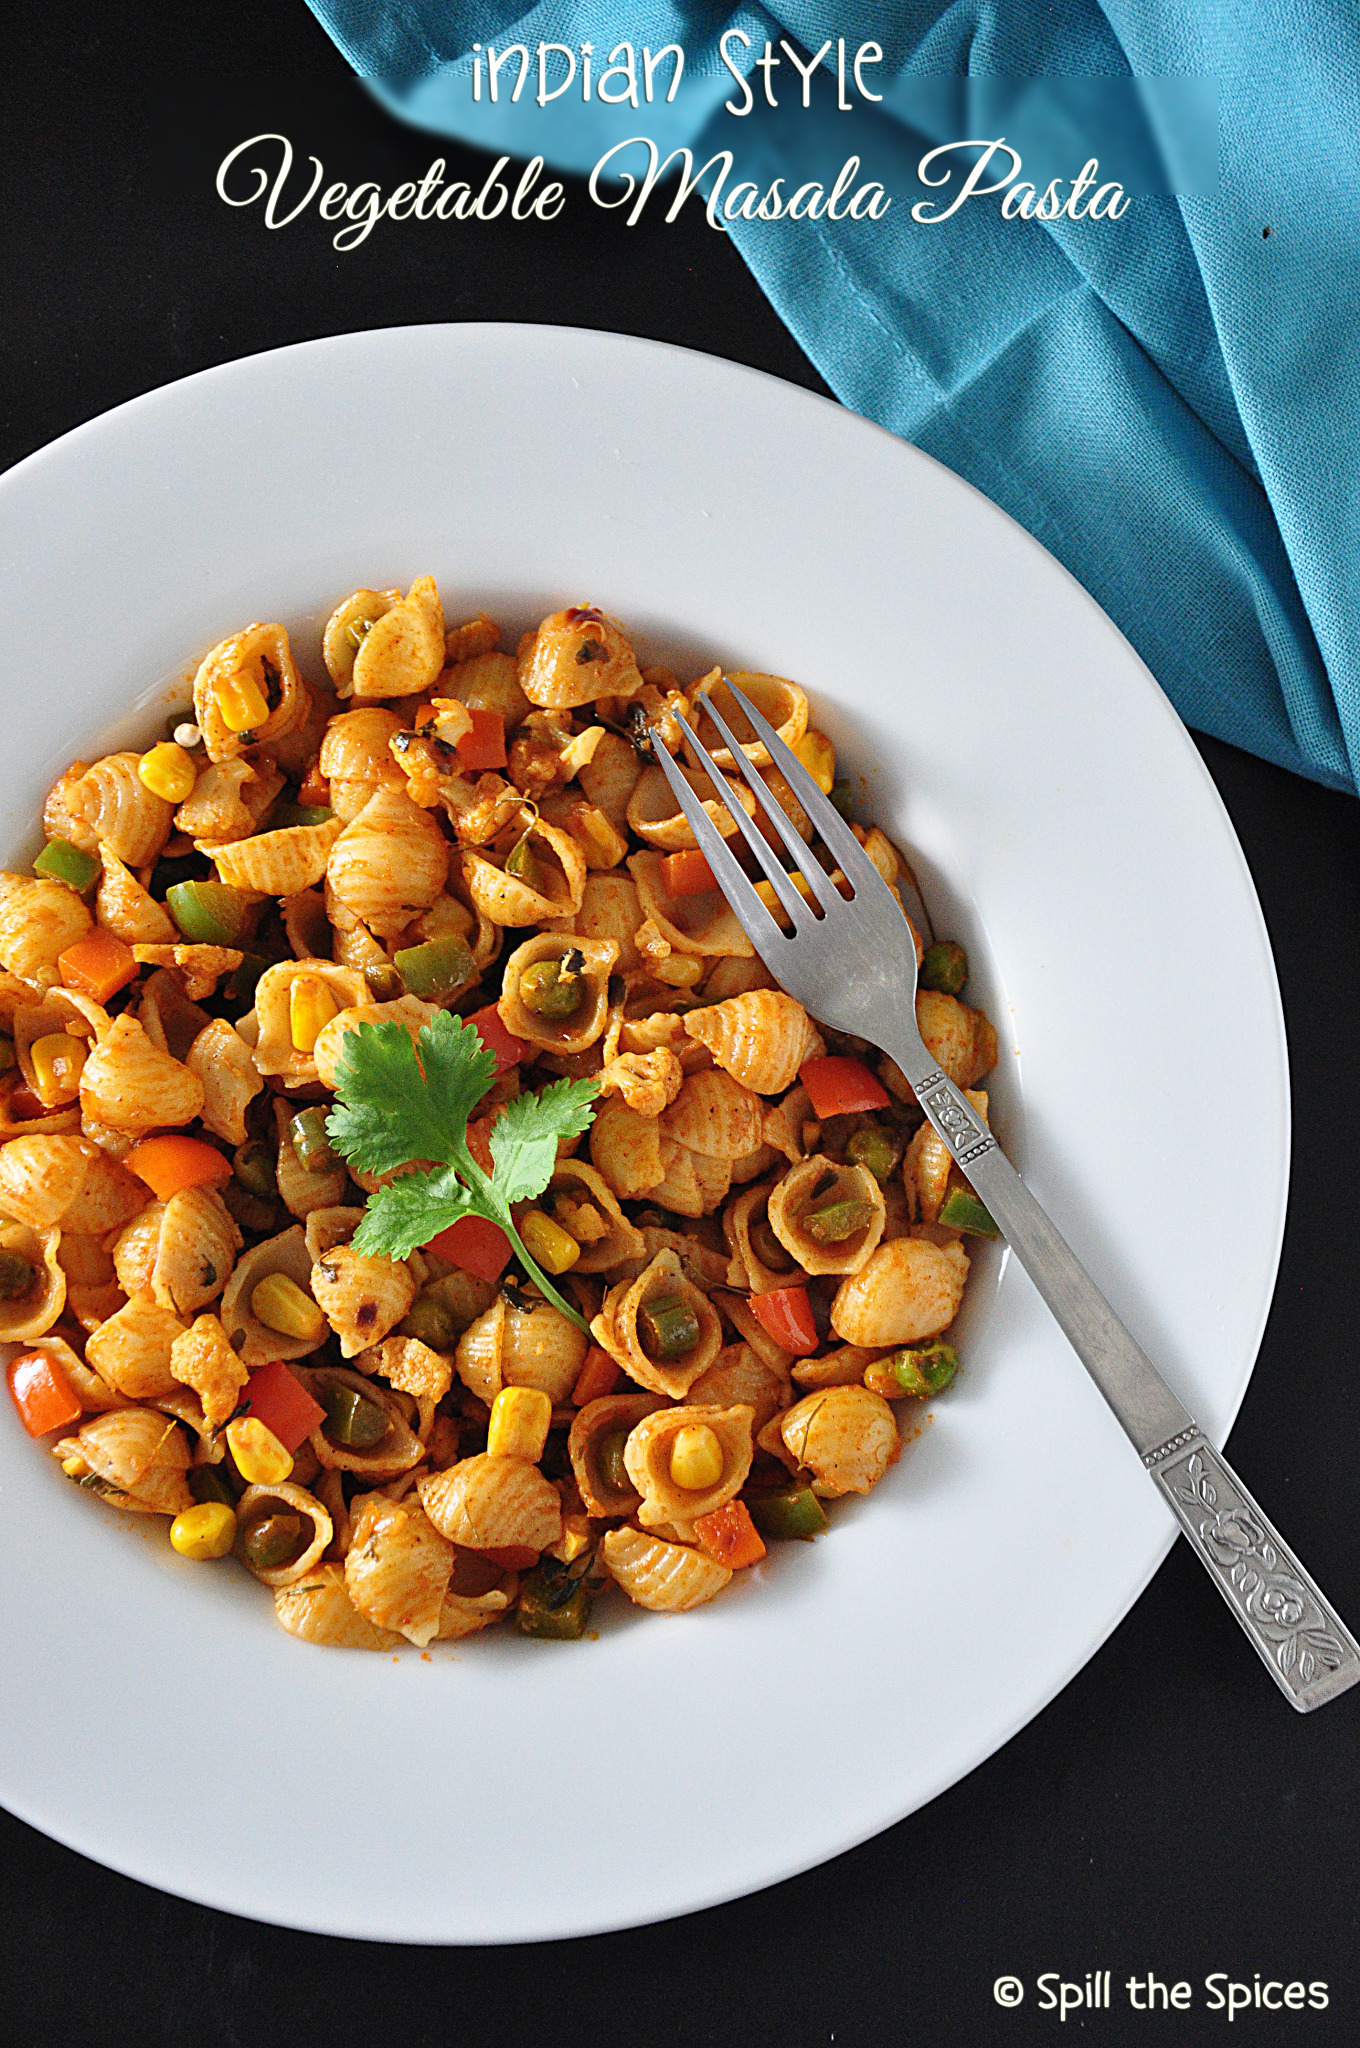 Indian Style Vegetable Masala Pasta